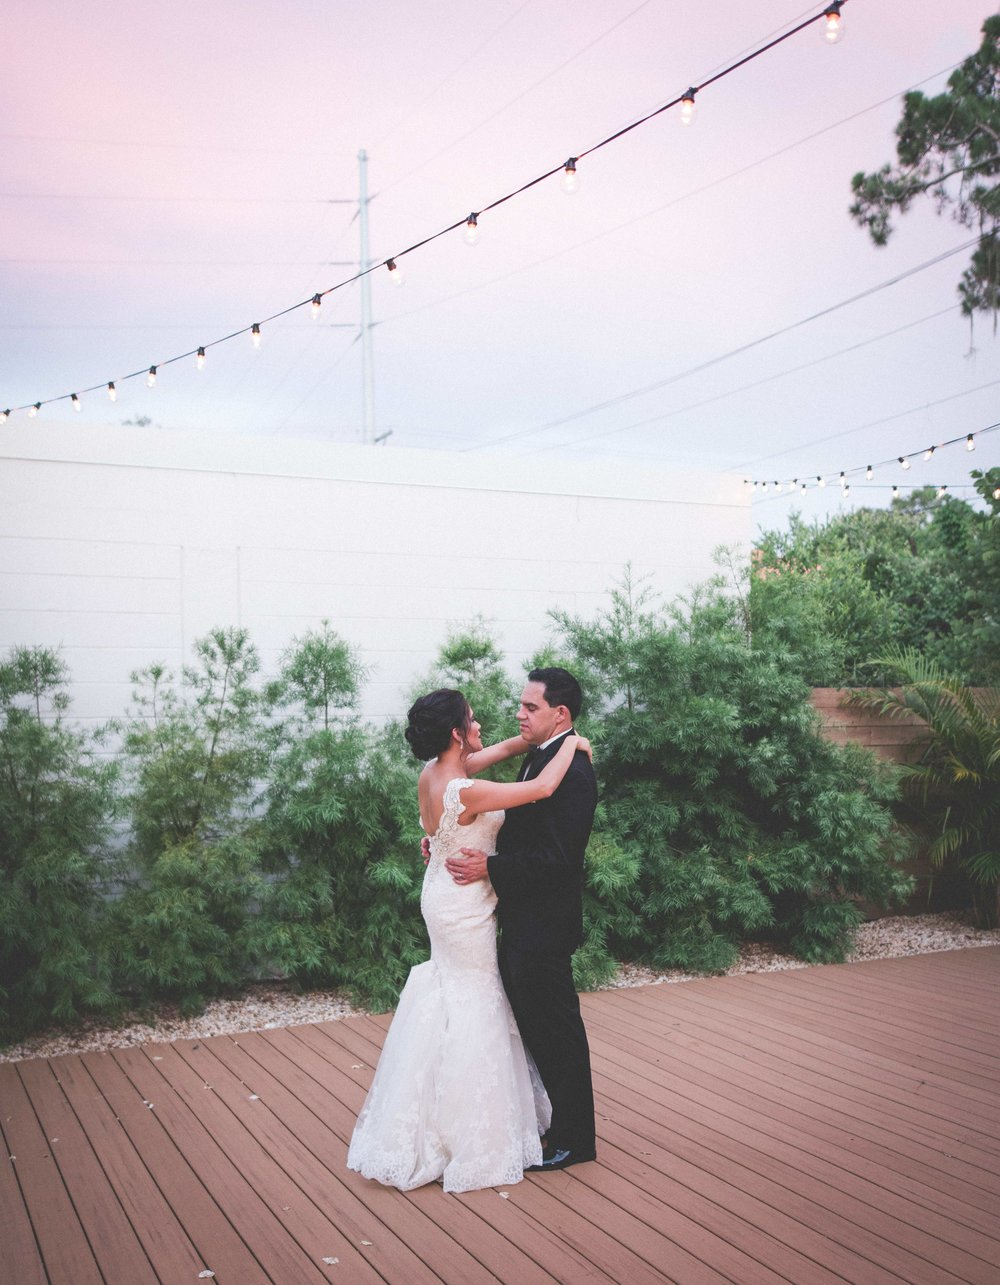 Initially worried about inclemental weather for their outdoor ceremony, the resulting sky full of pinks and purples proved to be beautiful surprise that complimented the blush colors found in the reception.